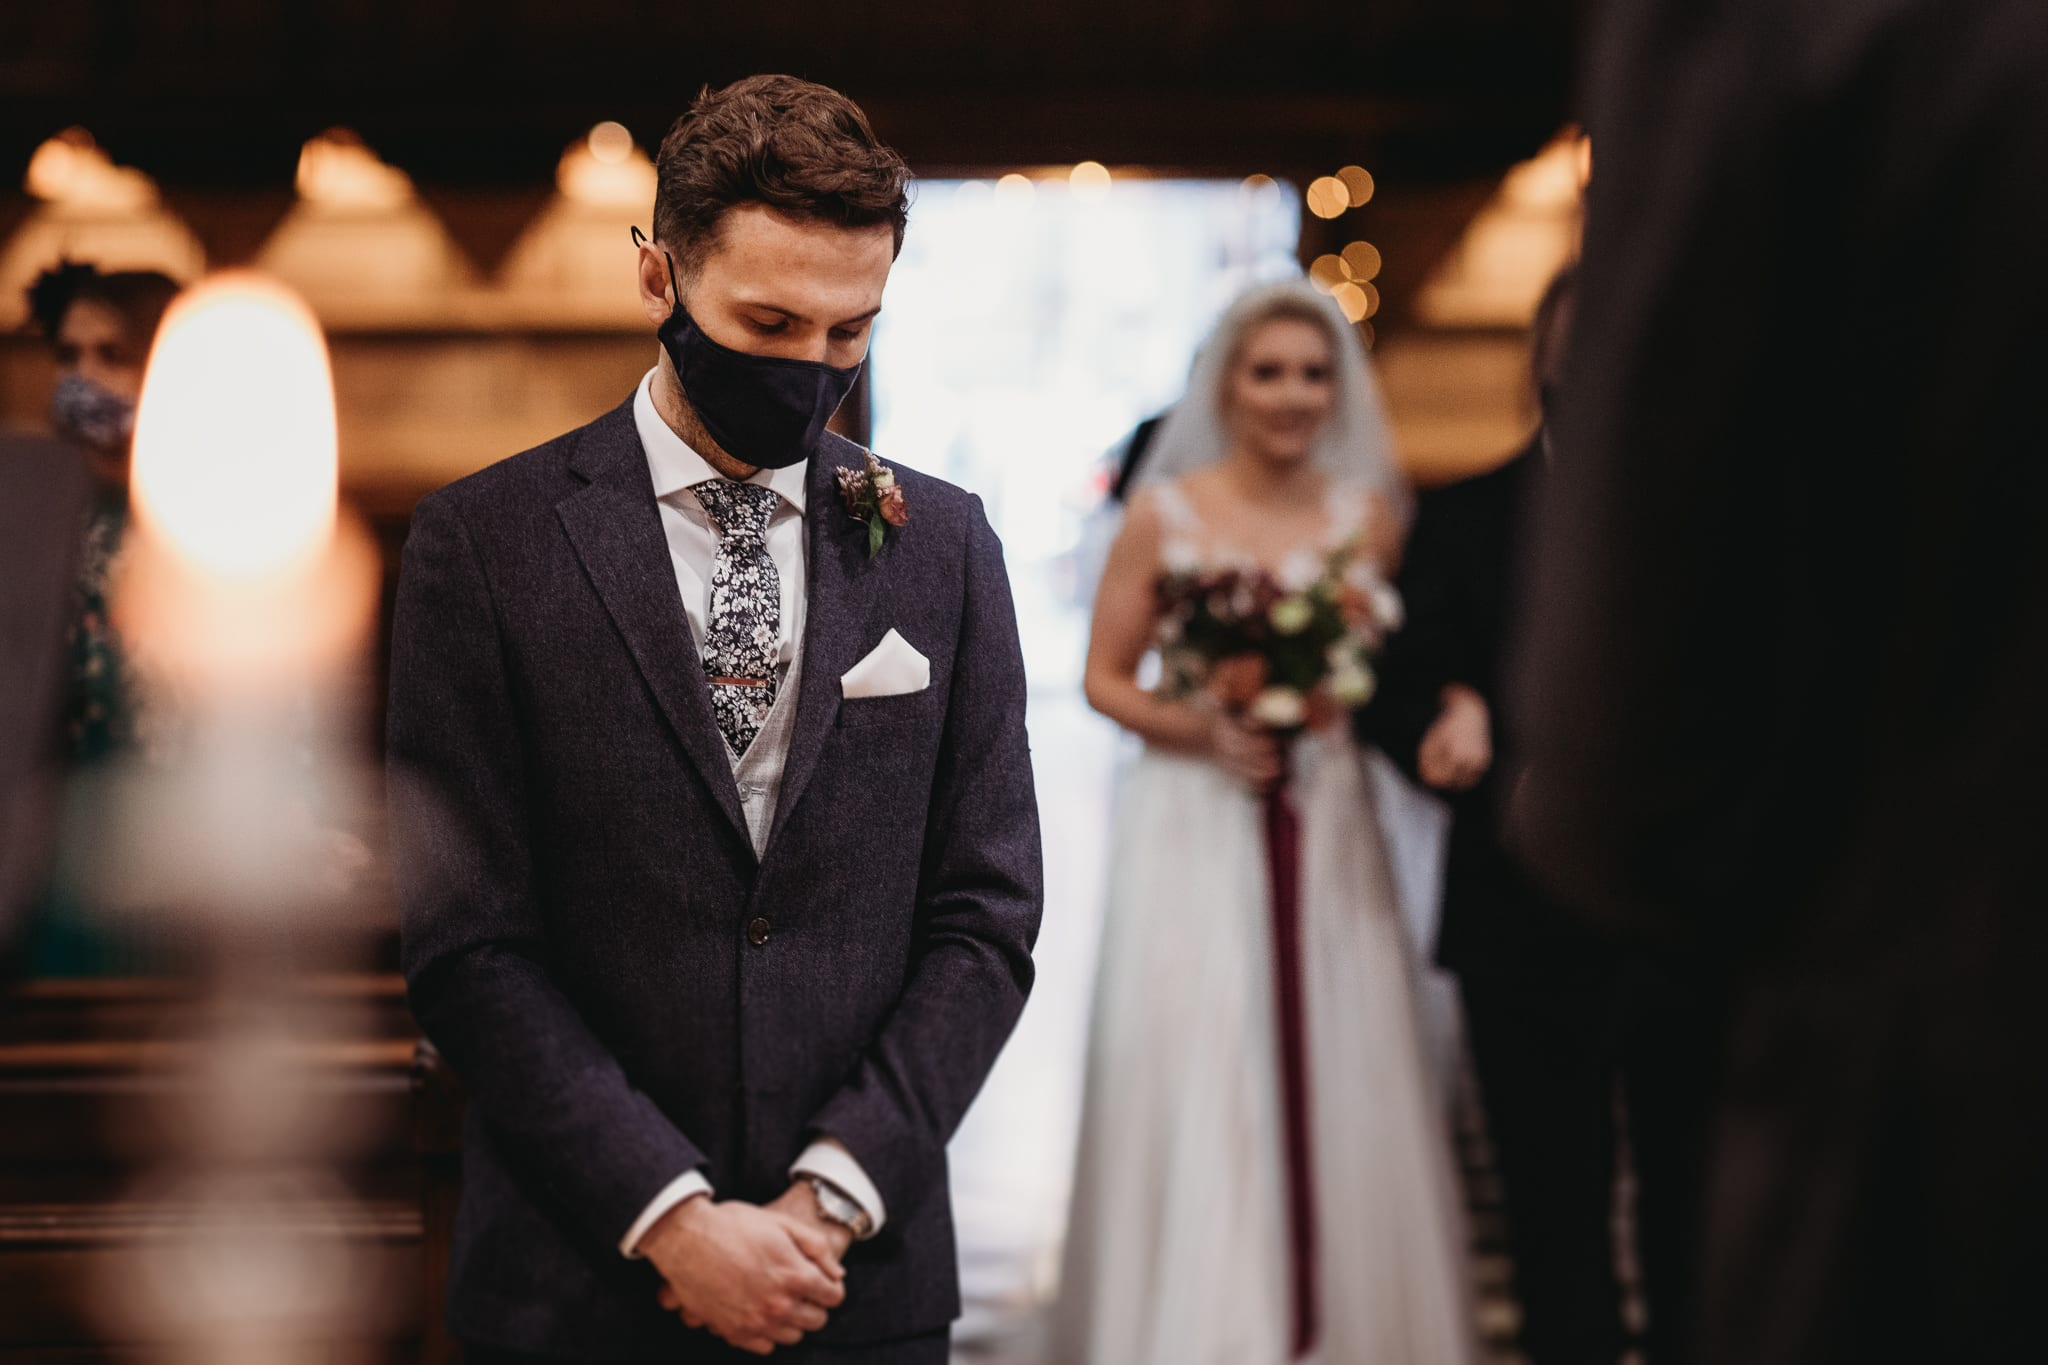 groom wearing mask, bride walking with her father